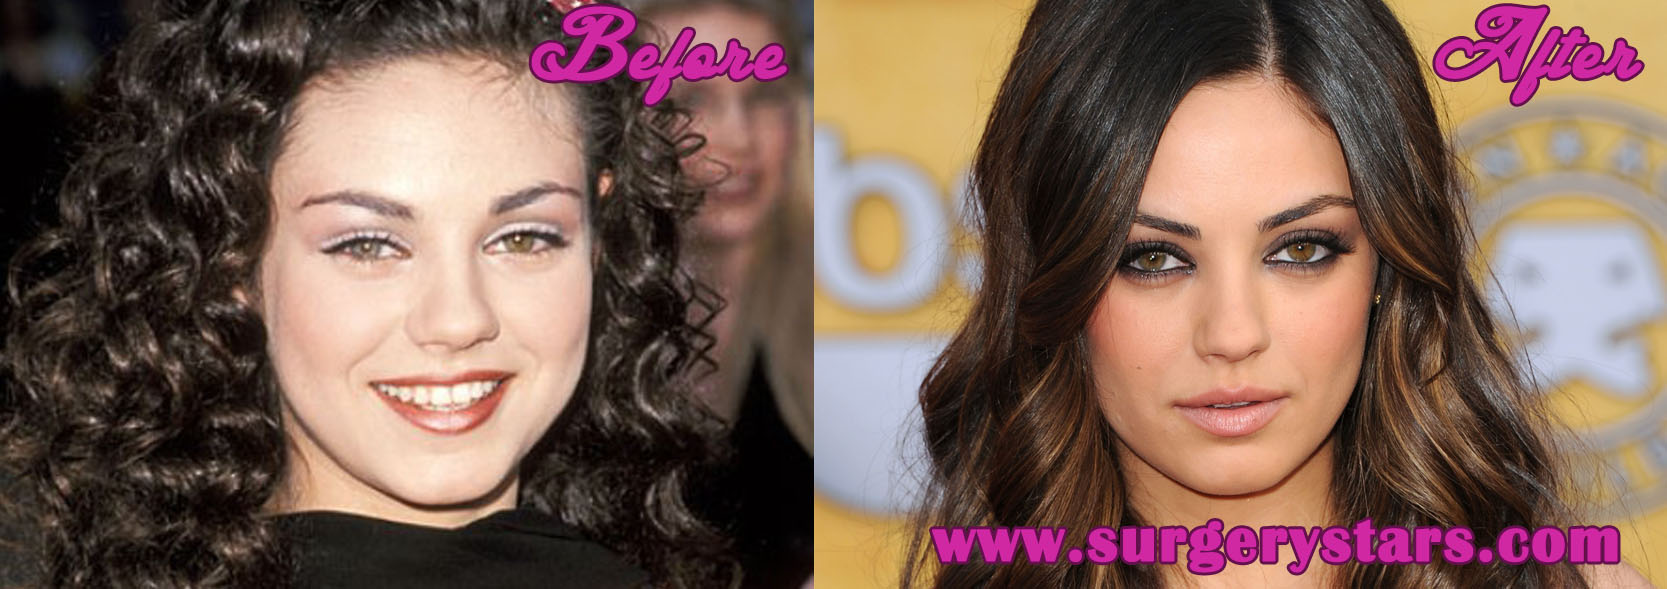 Mila Kunis Nose Job Before and After Pictures